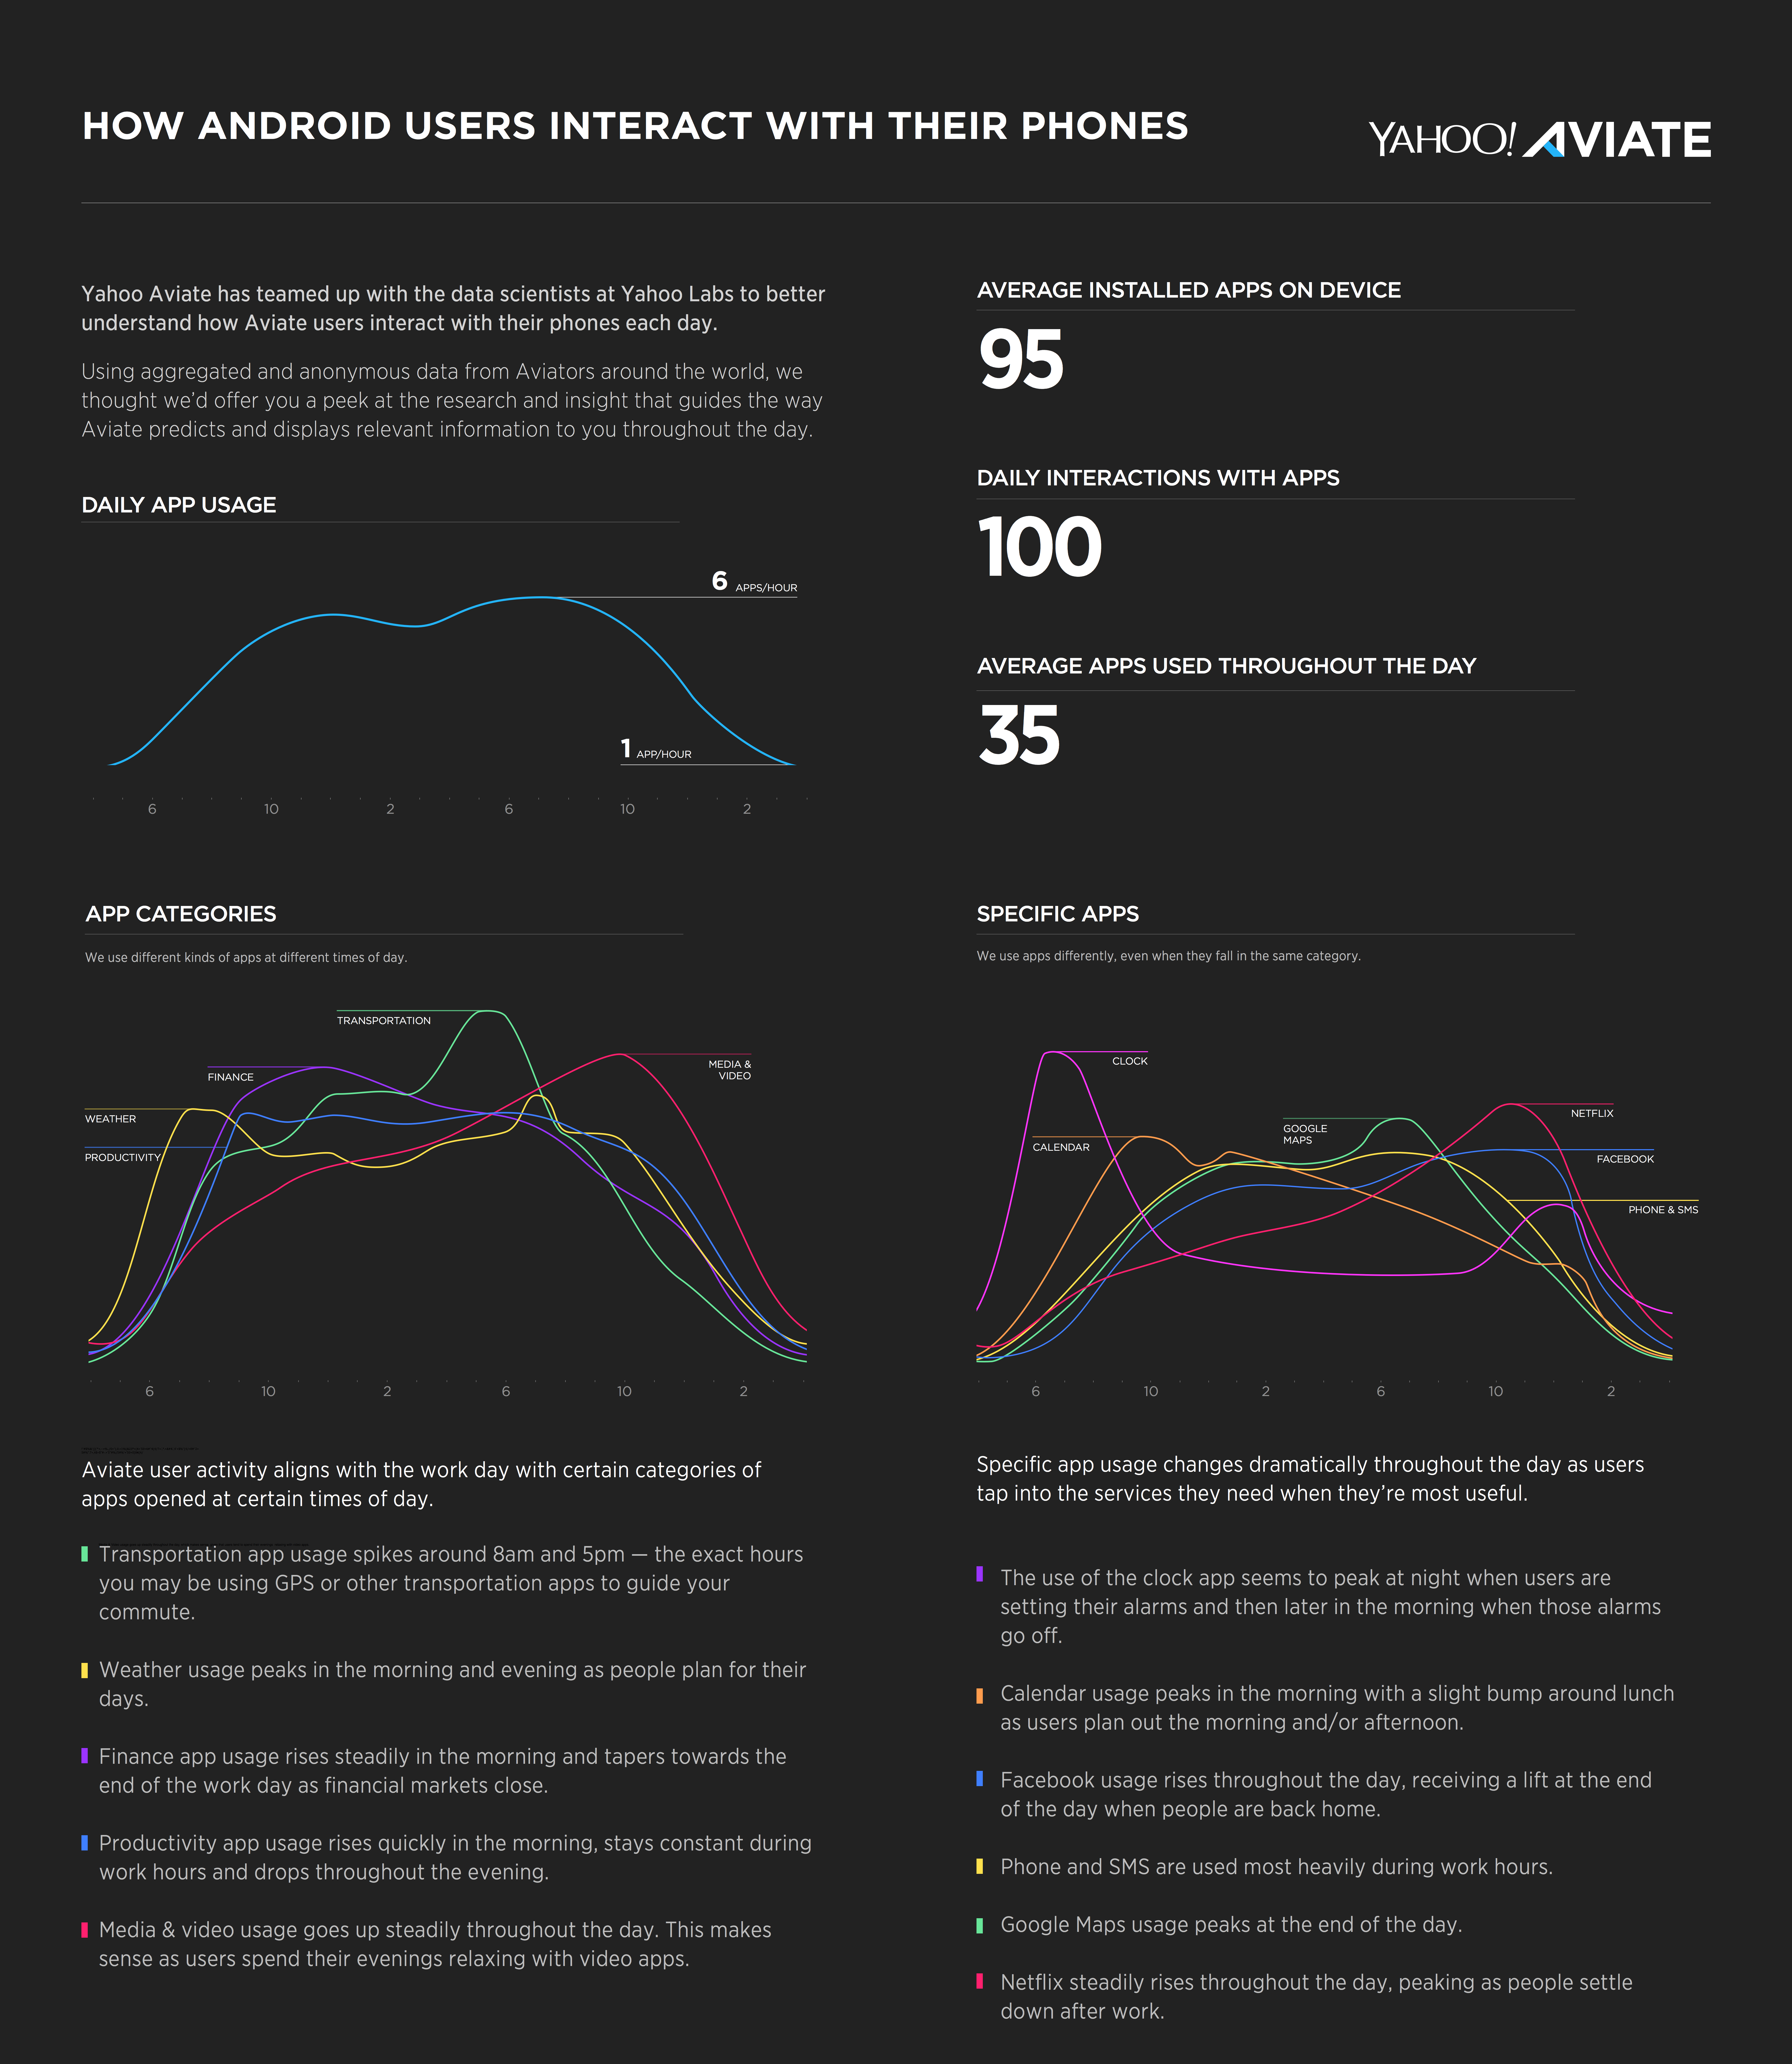 Yahoo Aviate Infographic (final 8.25)